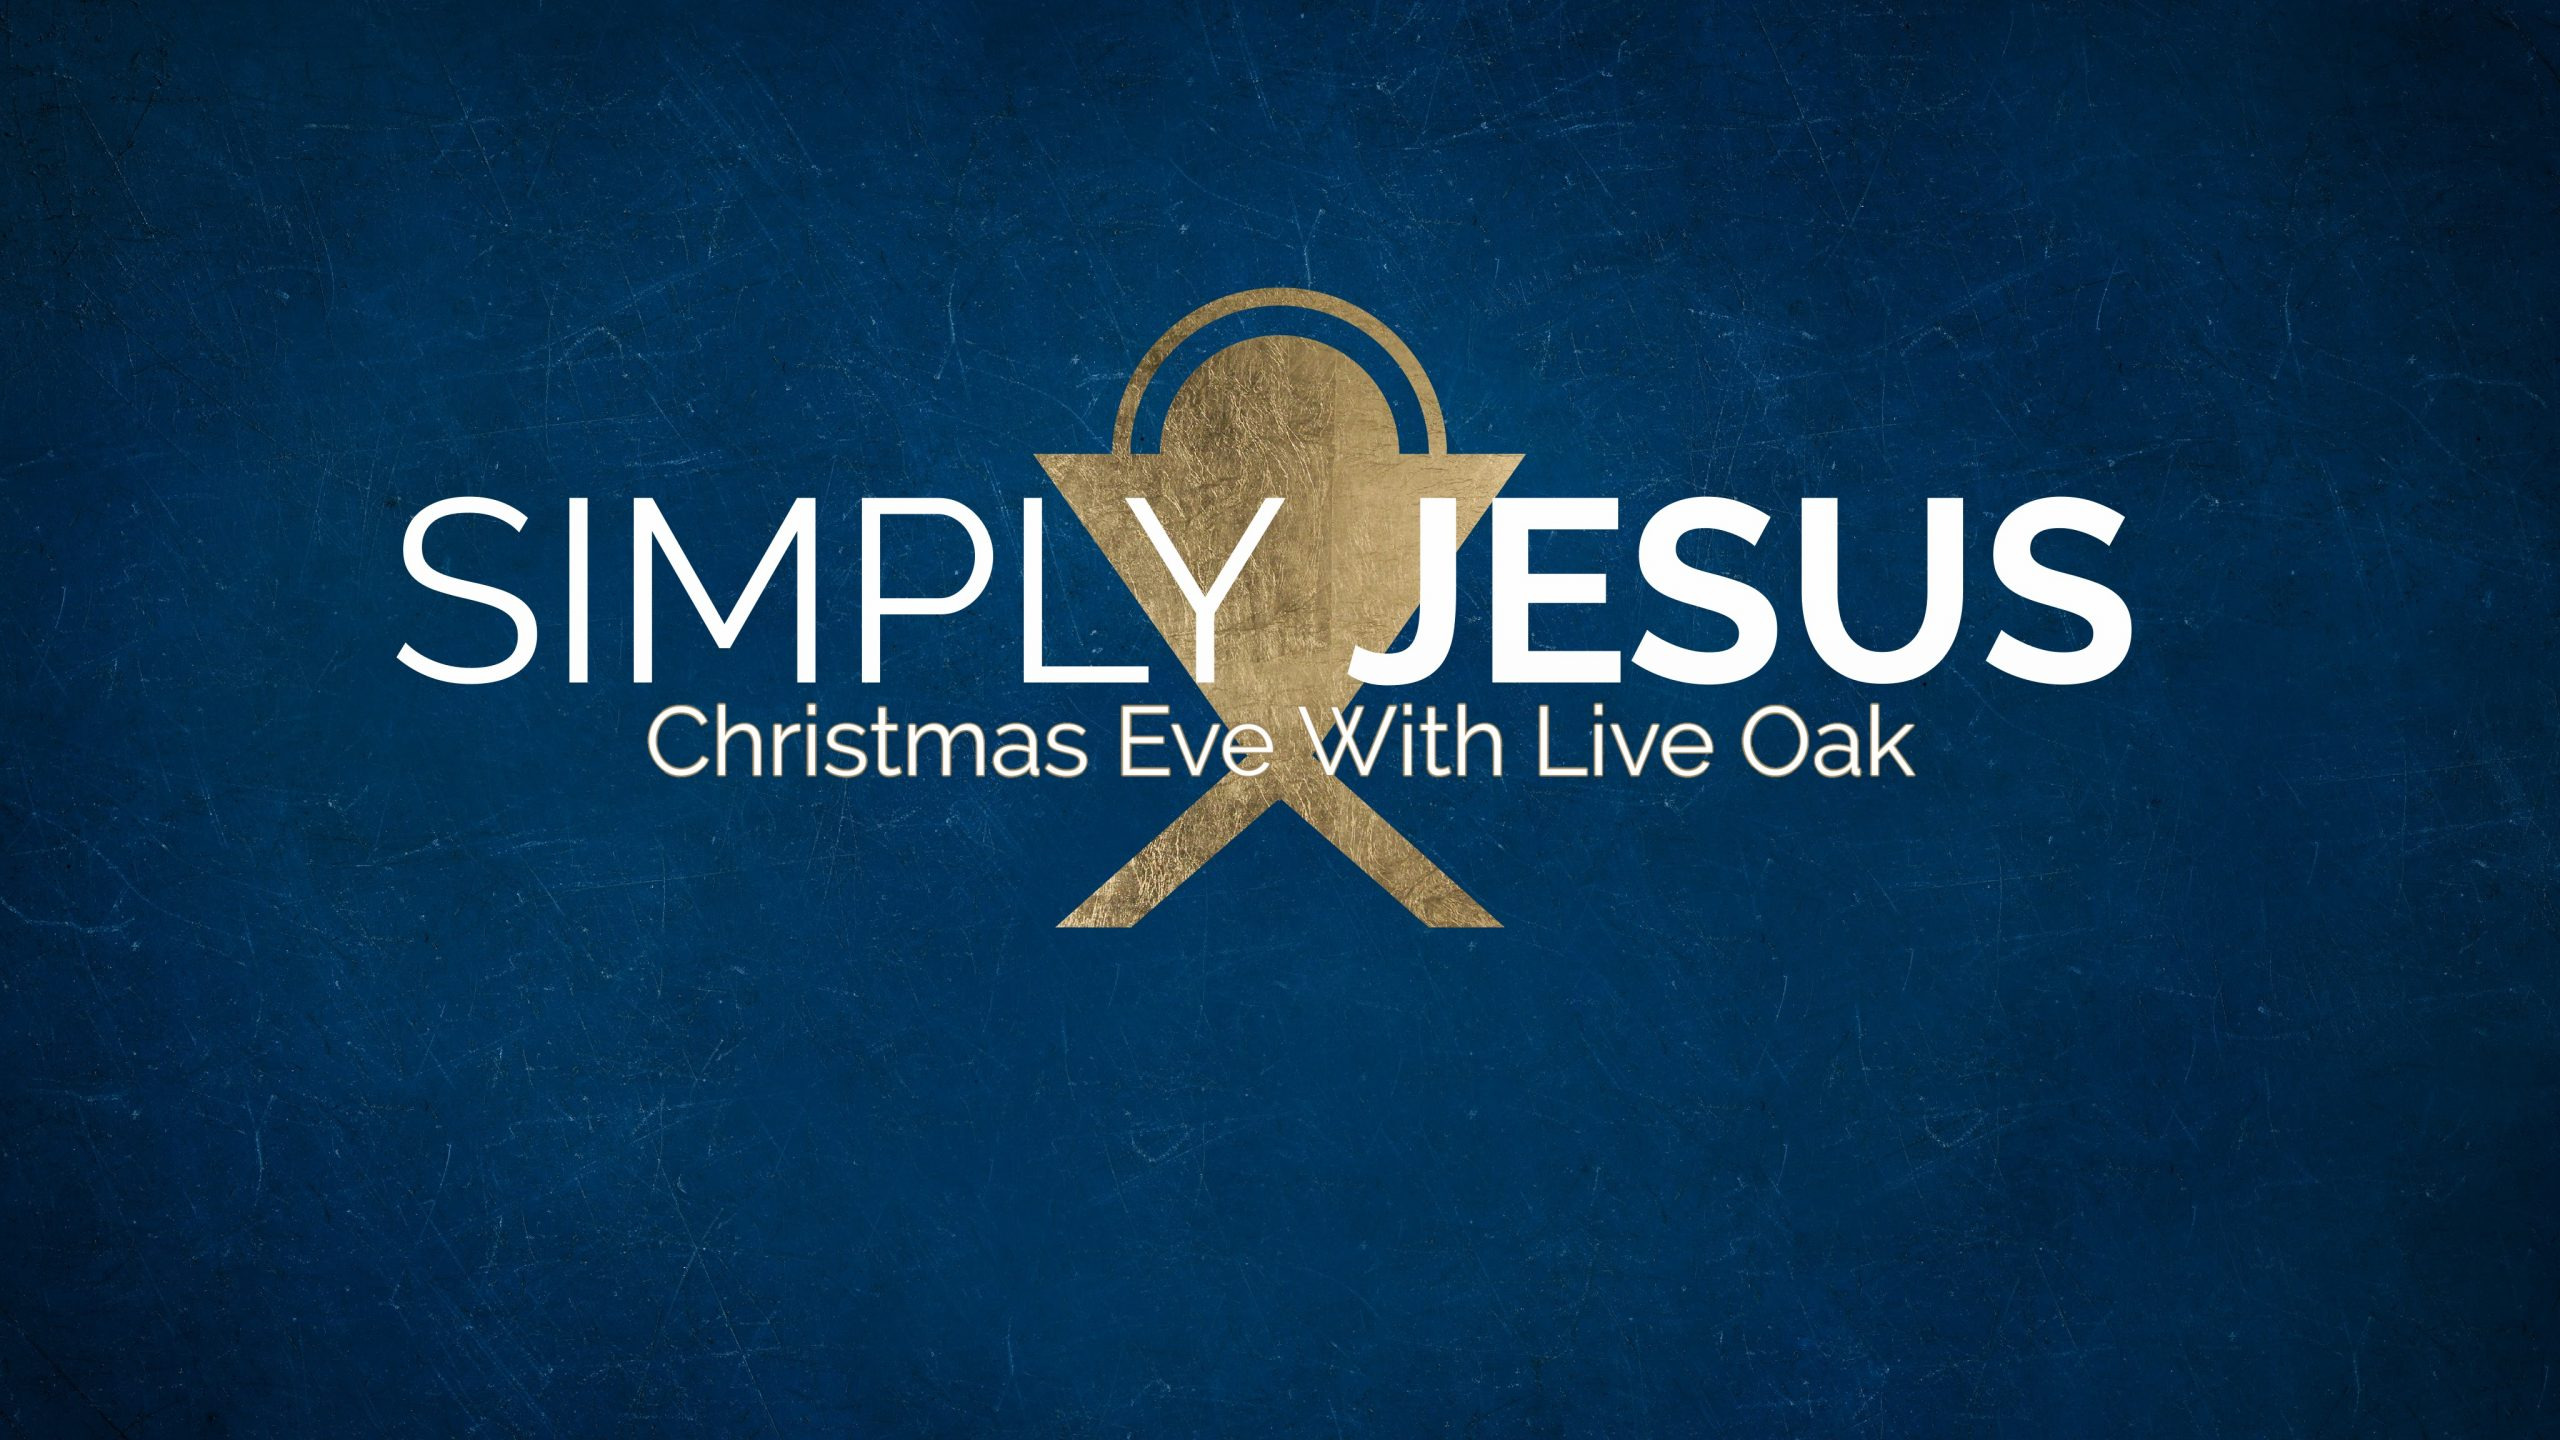 Simply Jesus | Christmas Eve At Live Oak 2020